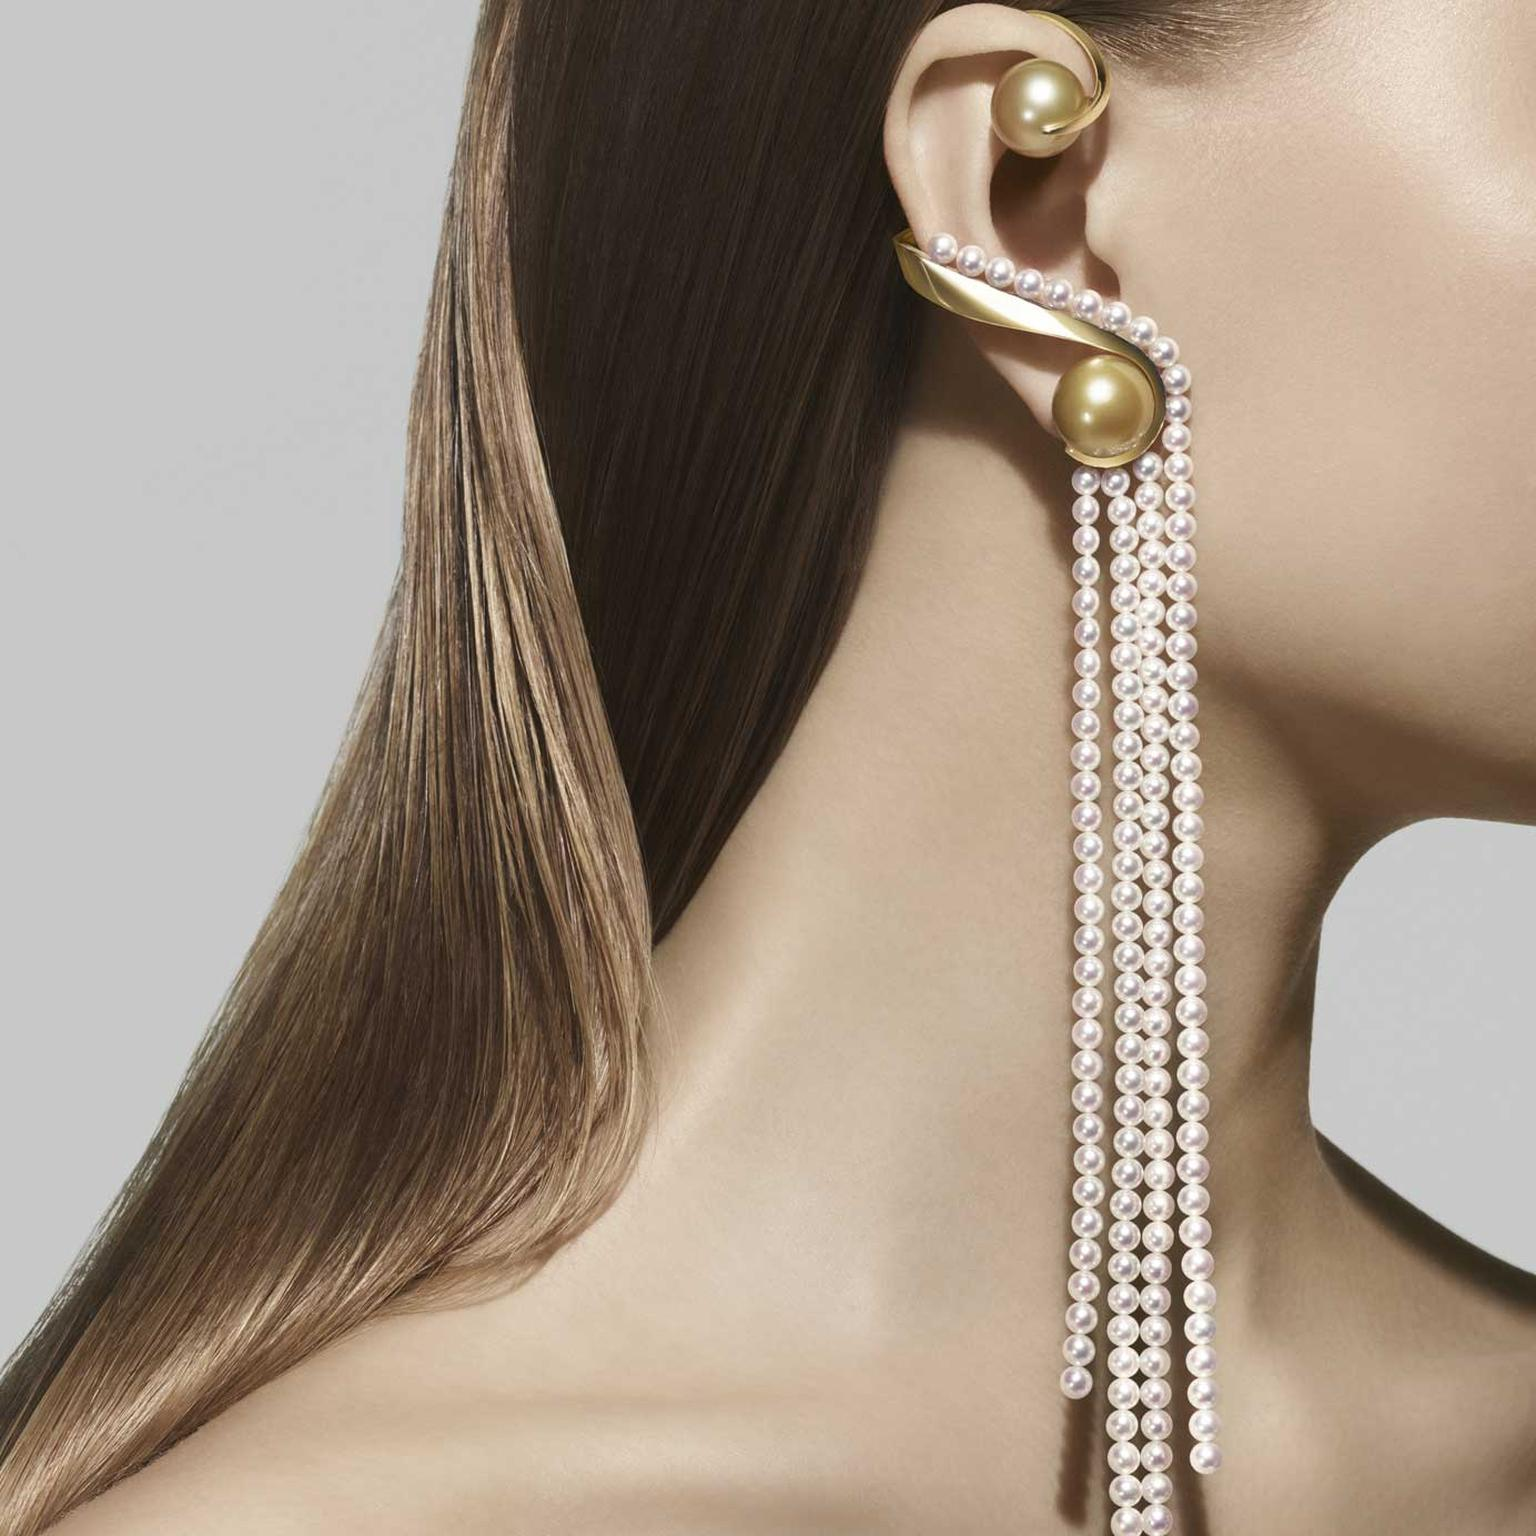 Atelier Waterfall earrings Tasaki 2018 with white Akoya Pearl White and South Sea Pearl Gold